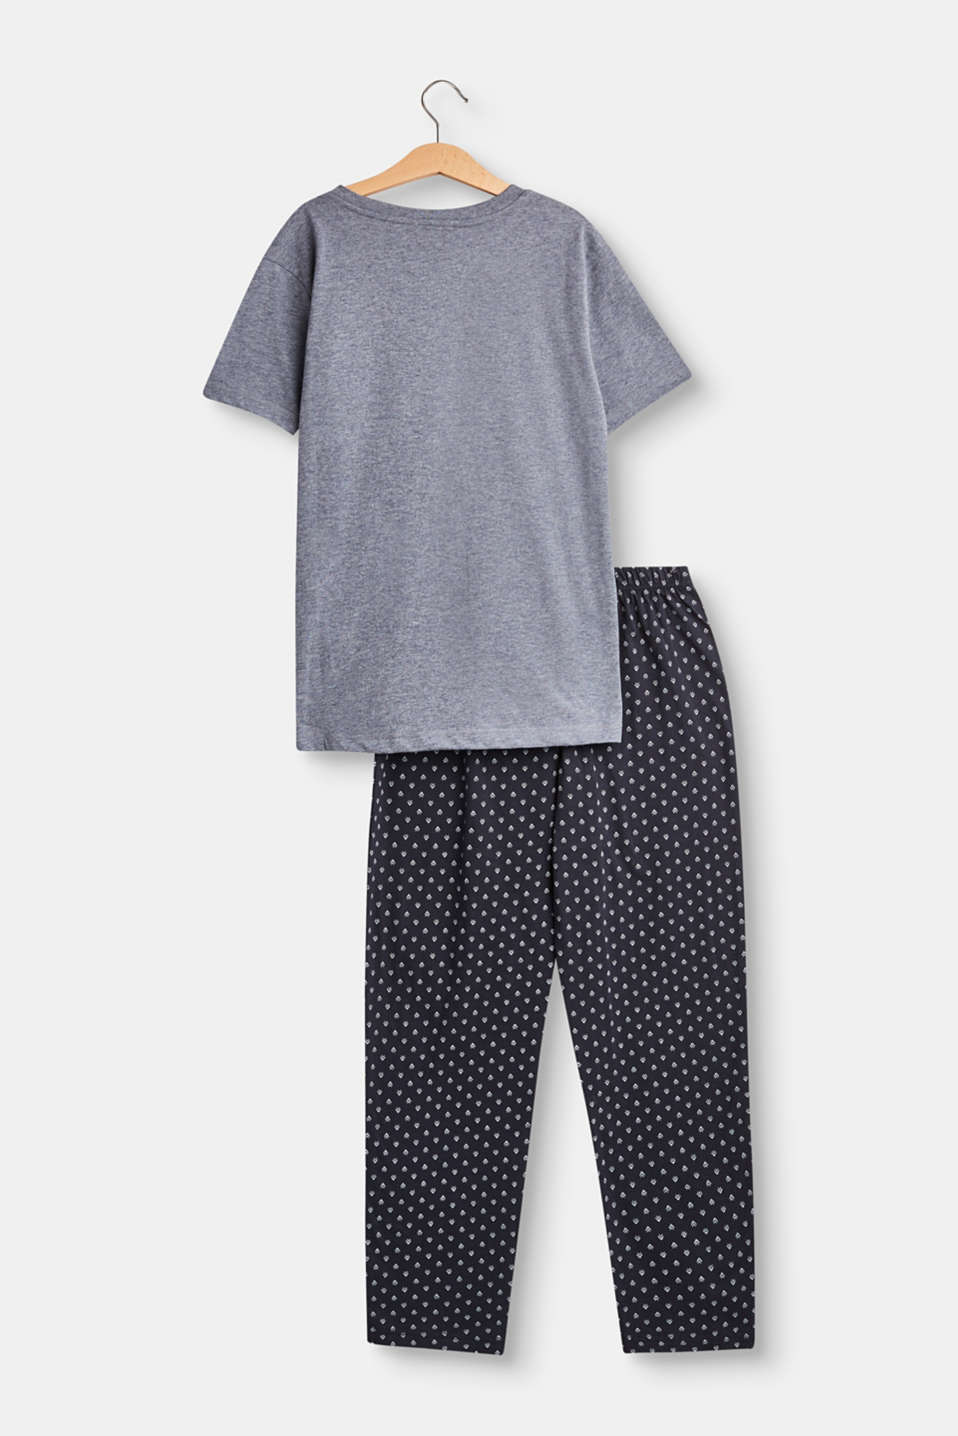 Soft jersey pyjamas with print bottoms